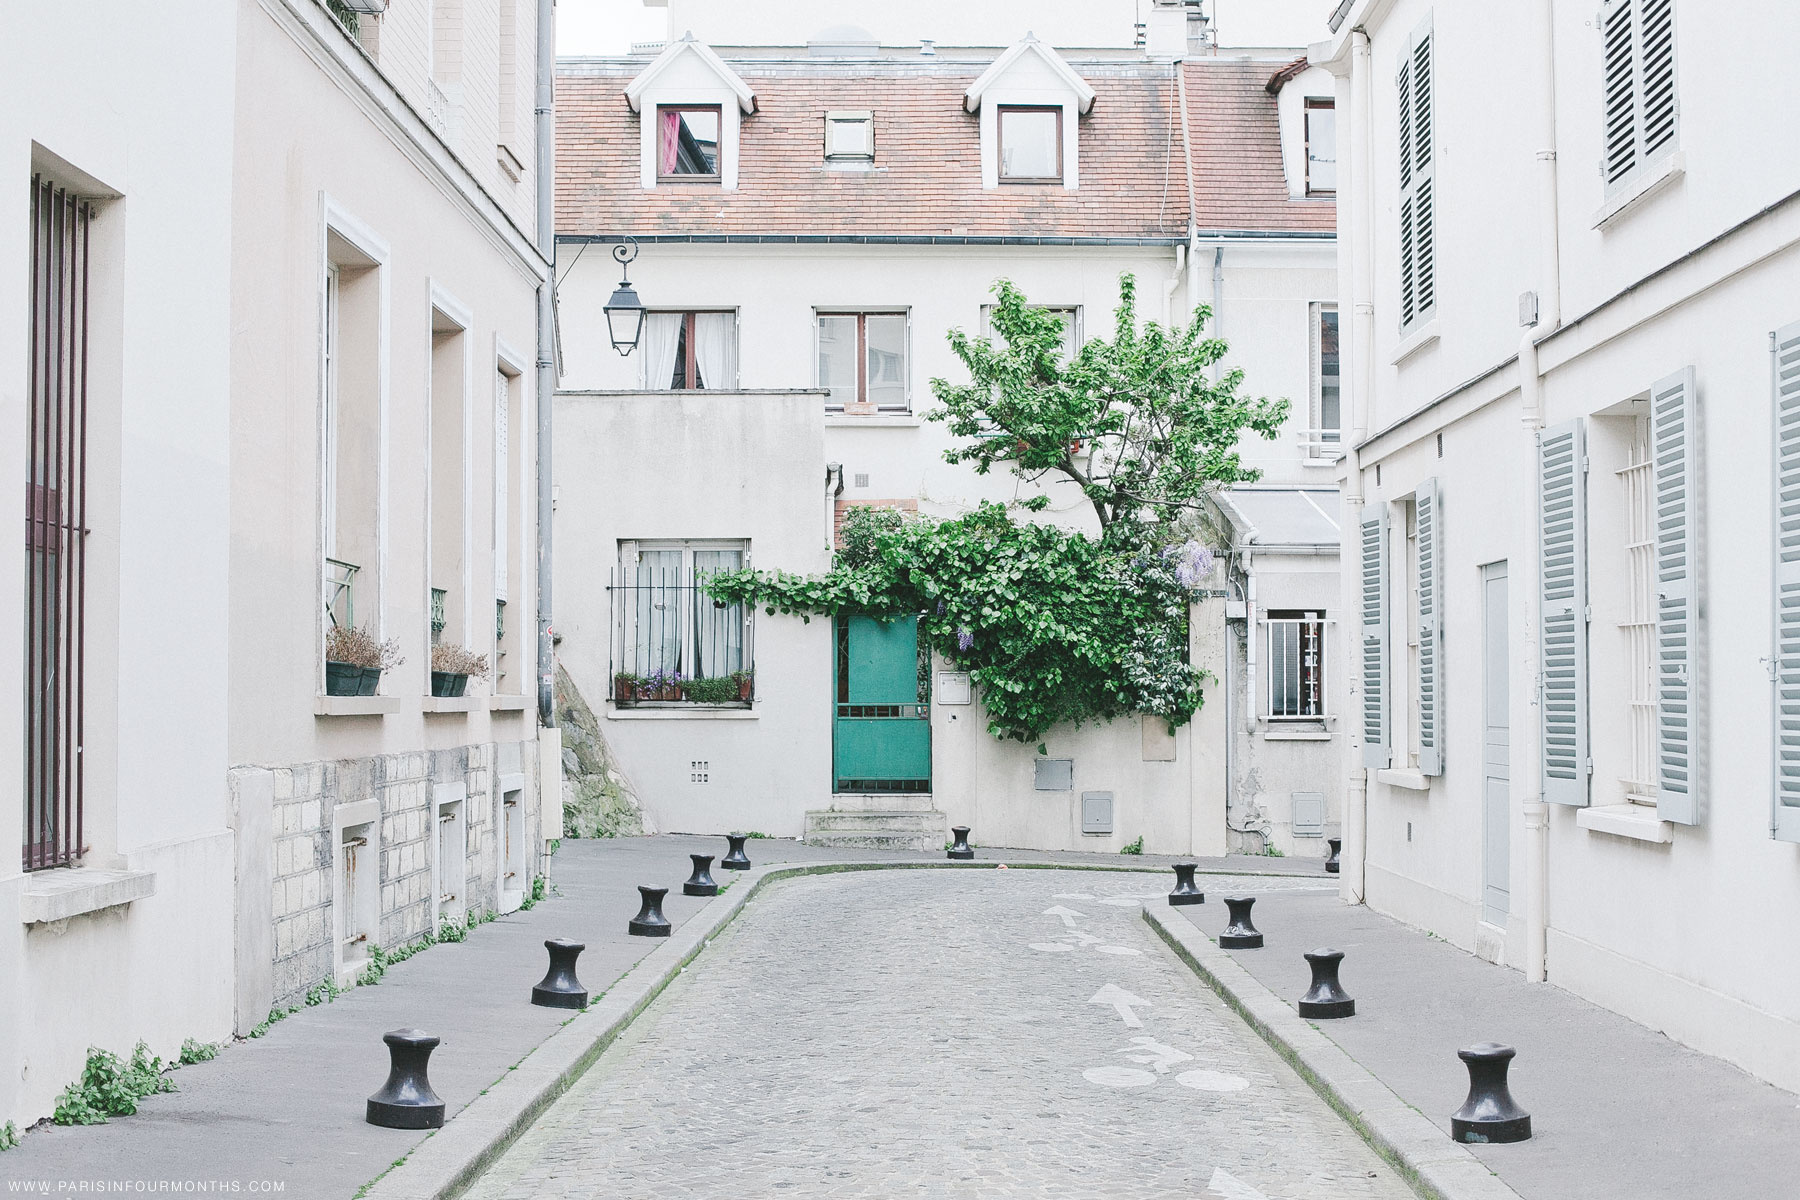 La Butte-aux-Cailles by Carin Olsson (Paris in Four Months)